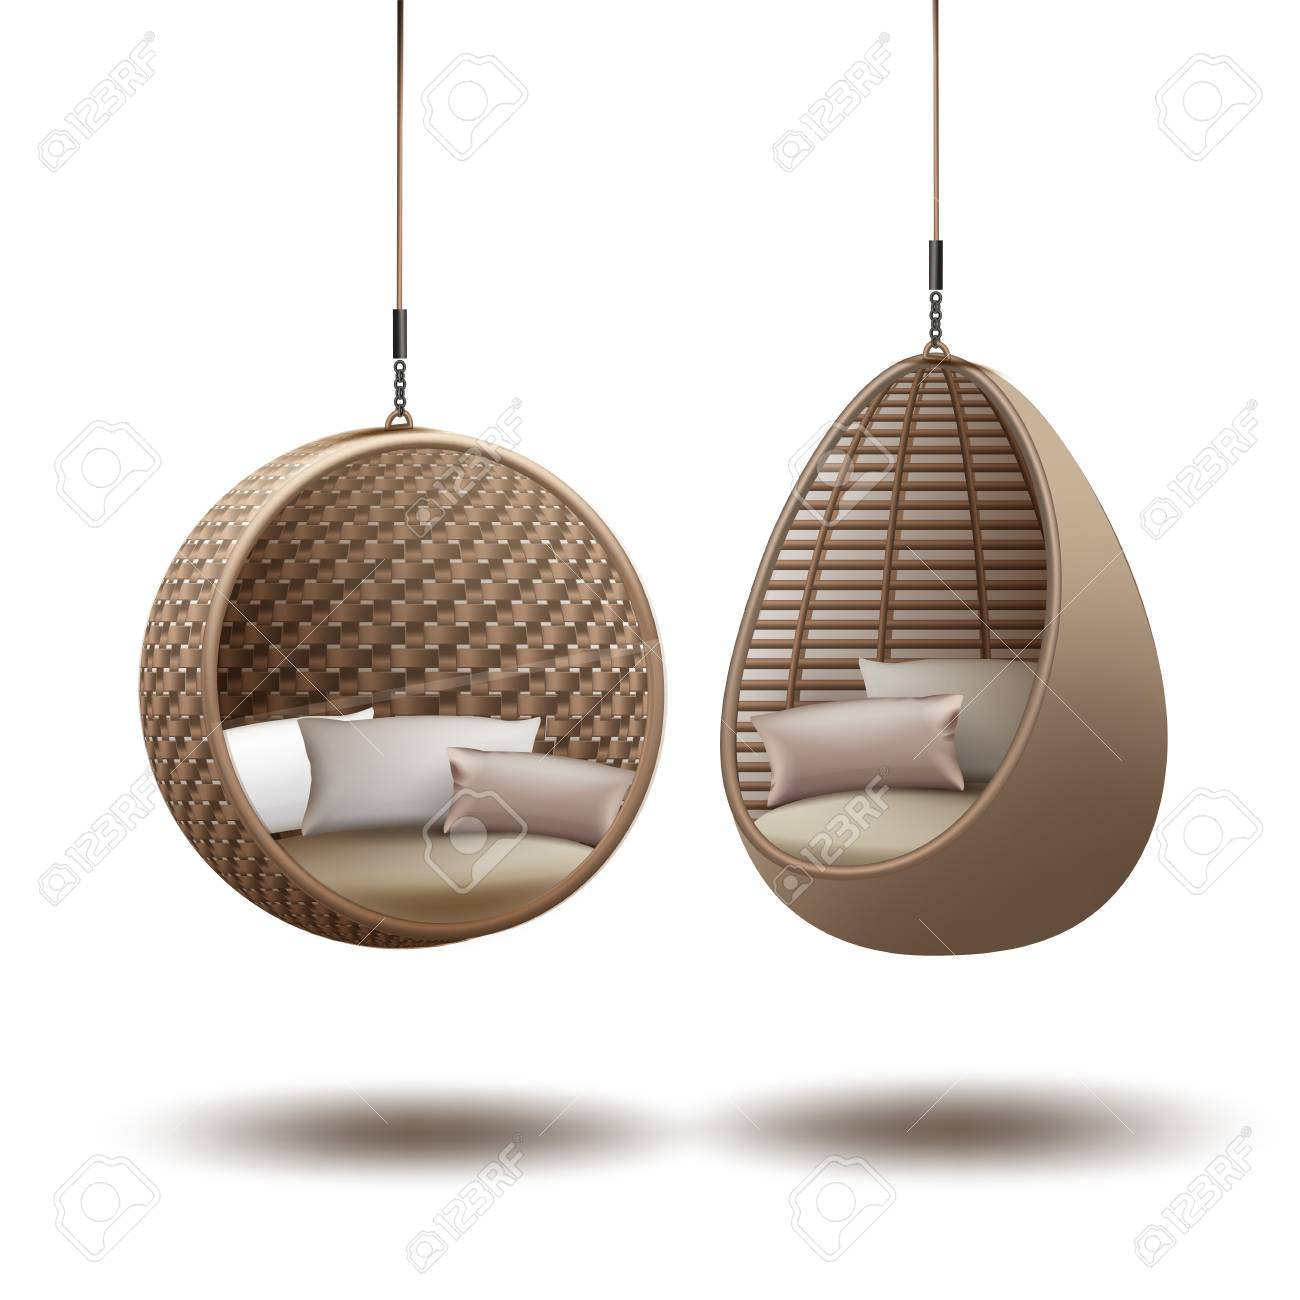 Wicker Hanging Chairs Swing Hanging On A Chain With Cushions Royalty Free Cliparts Vectors And Stock Illustration Image 89310301